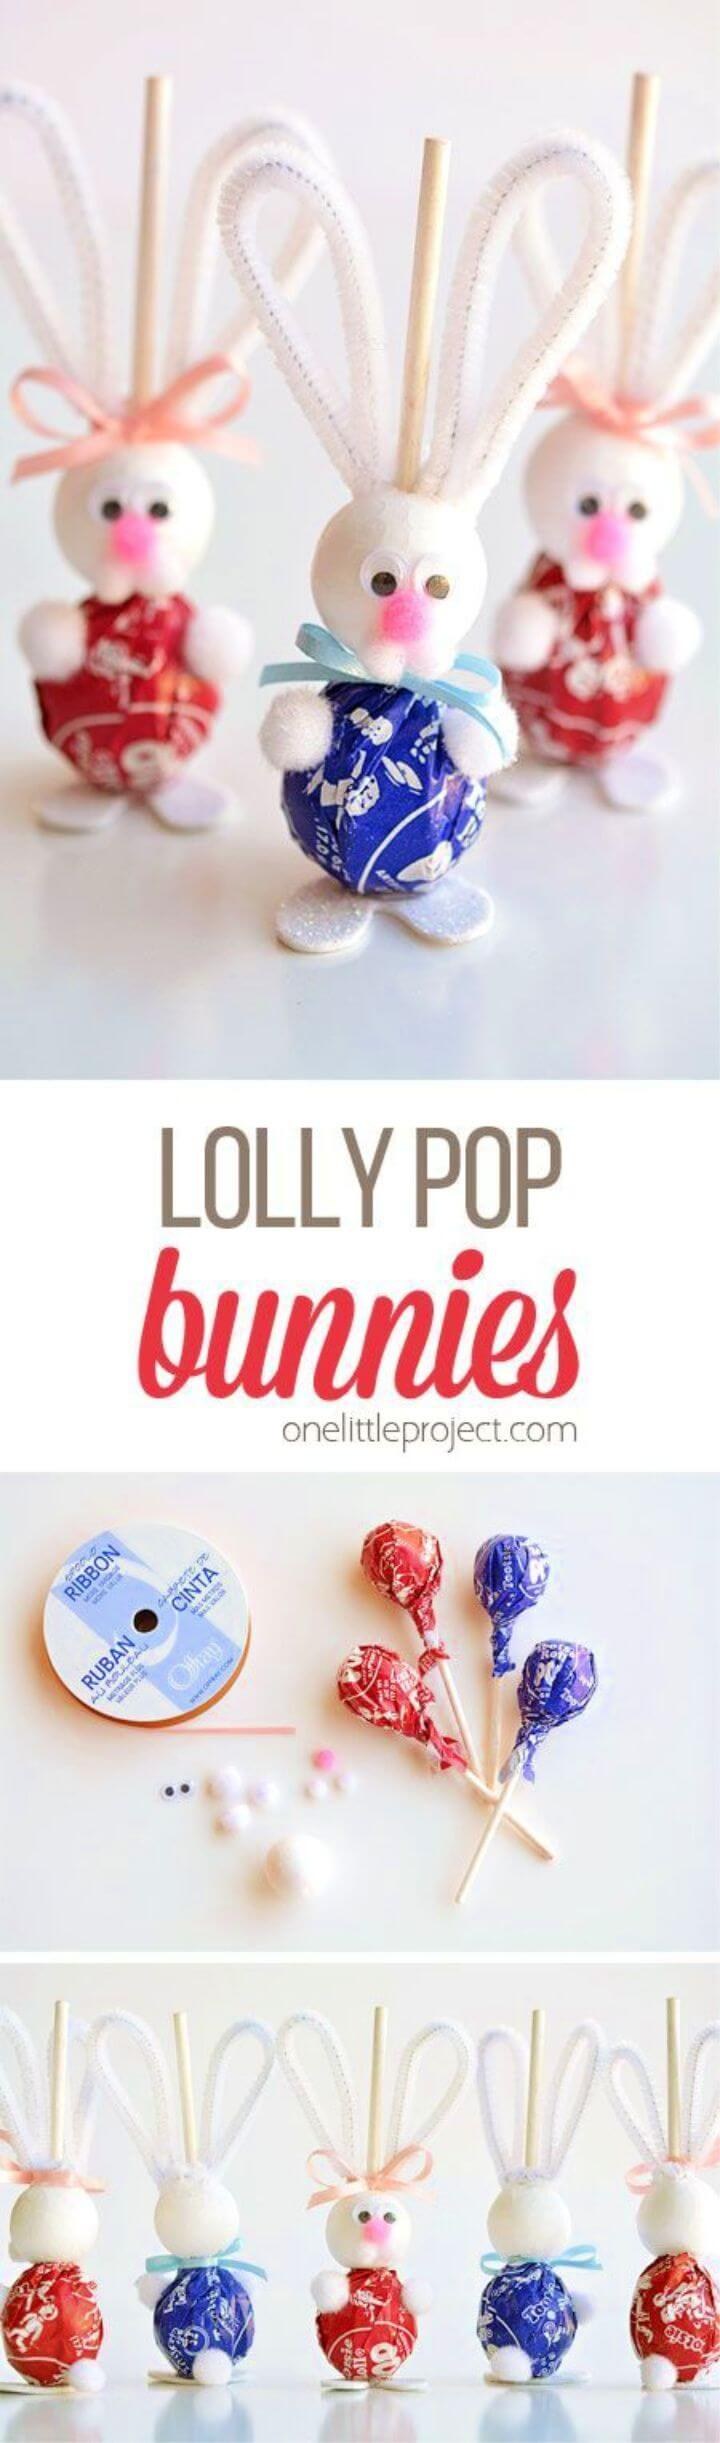 DIY Lolly Pop Bunnies